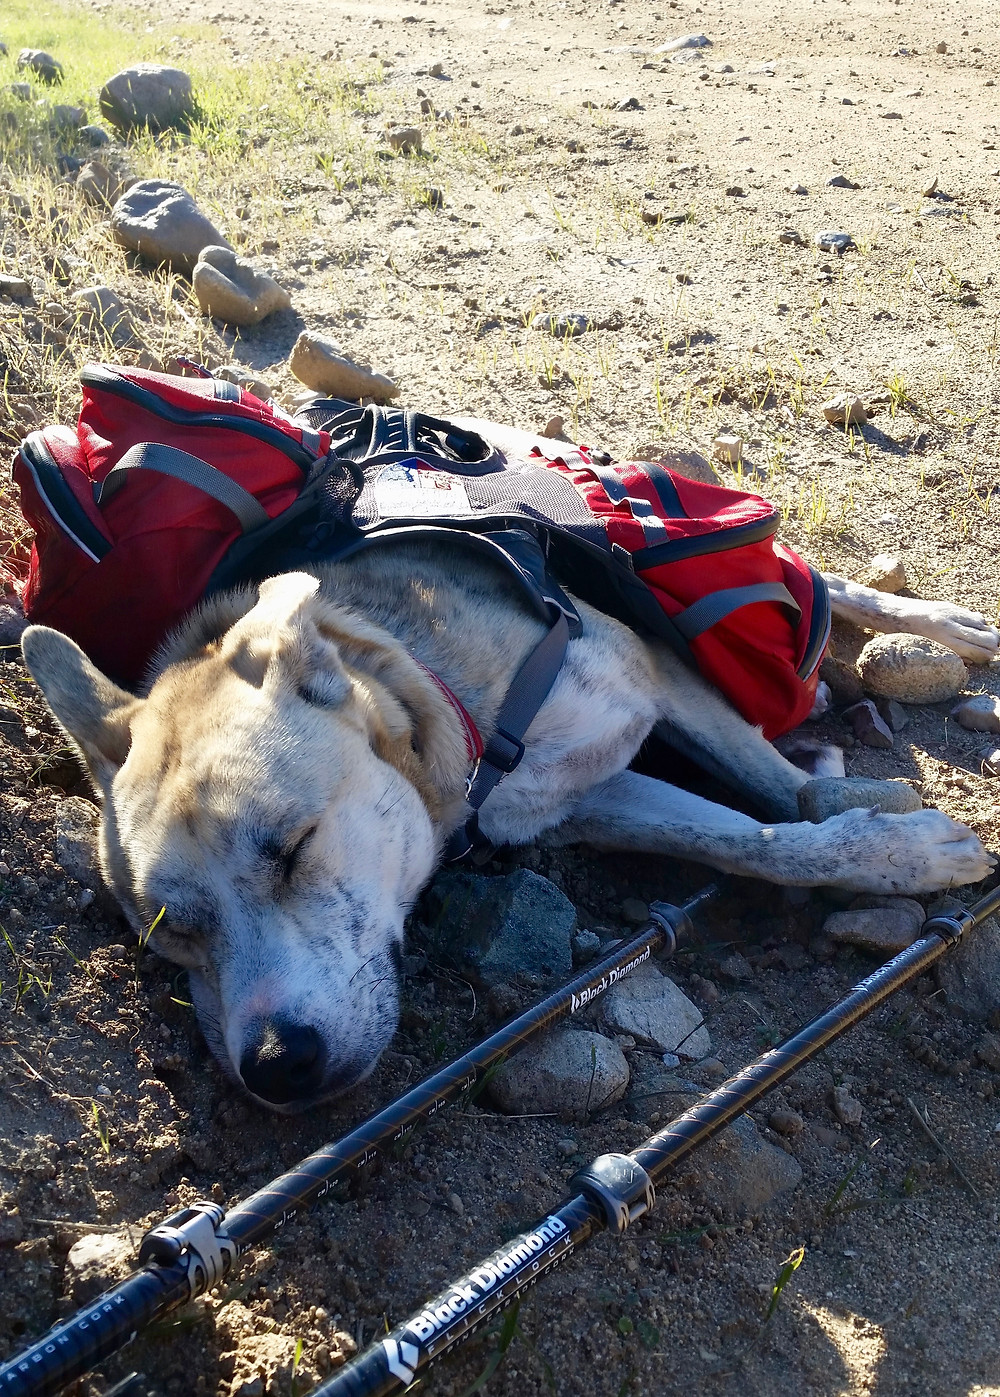 A blond brindle dog is sprawled out asleep by the side of the trail still wearing her pack, and leaning on some rocks and hiking poles.